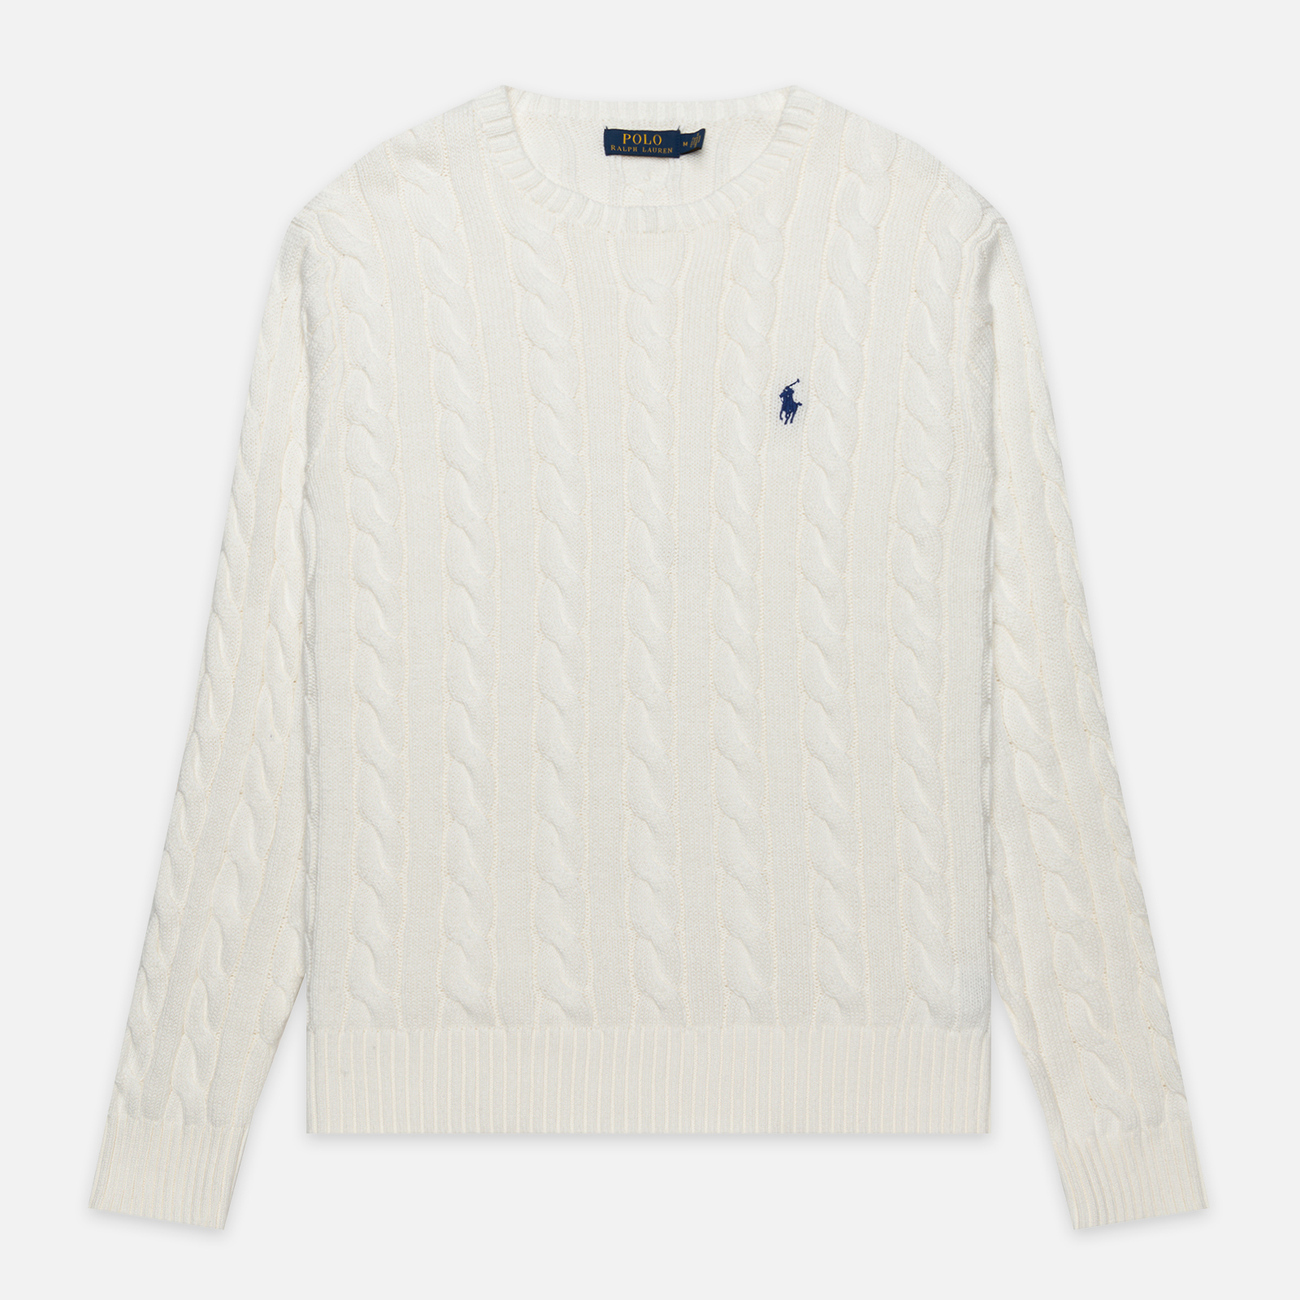 Мужской свитер Polo Ralph Lauren Driver Cotton Cable Old White